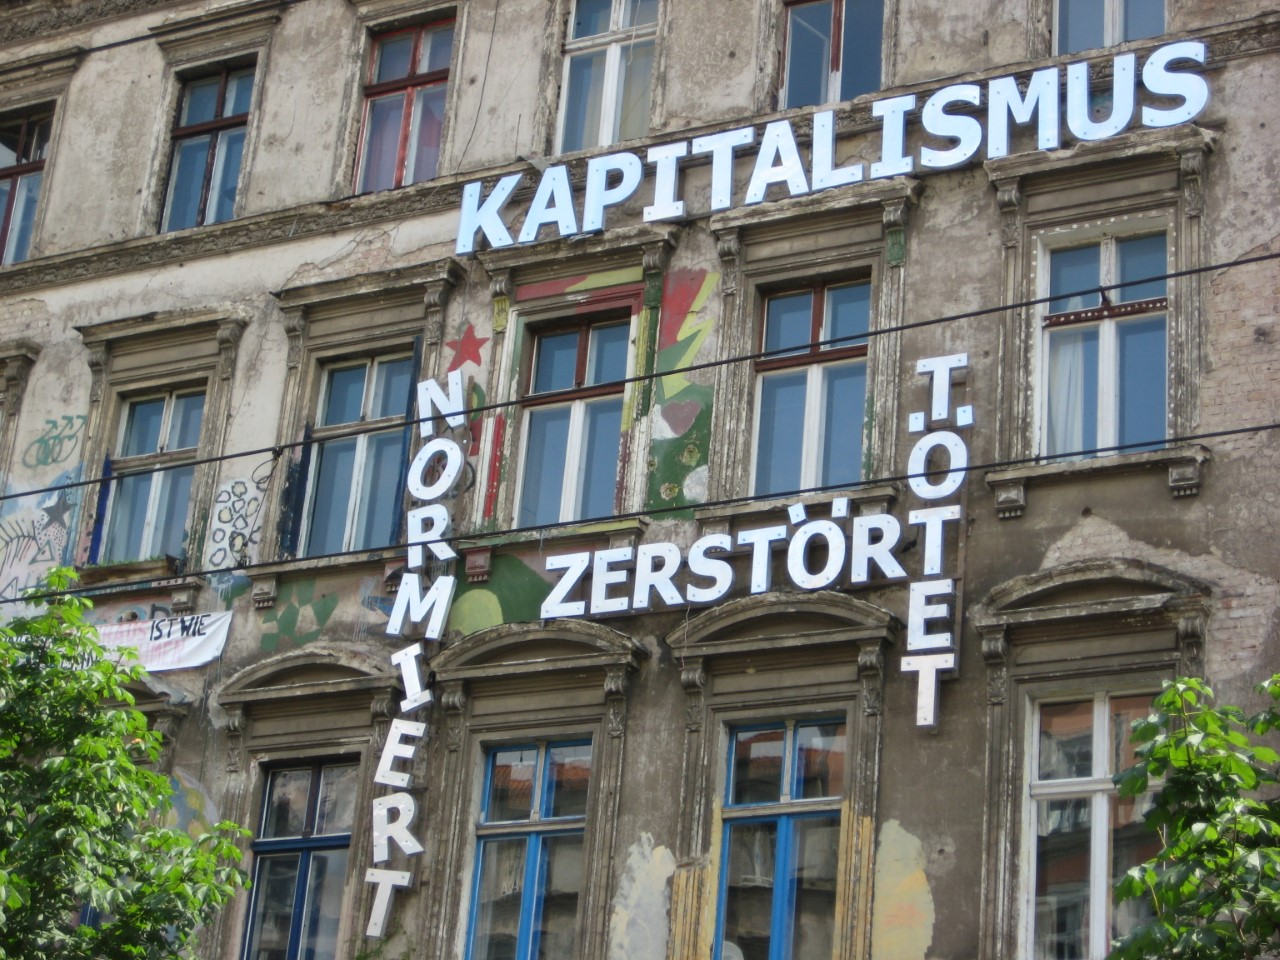 "A message on the facade of Kastanienallee 86 reads ""Capitalism normalizes, destroys, kills"". The building contains two Hausprojekte, or ""living projects"" that proliferated the new city center of reunified Berlin: the Tuntenhaus, or ""Queer House"", takes up the back wing of the building, and the KA 86 Hausprojekt faces the street. 2007. Courtesy of Daniela Sandler."